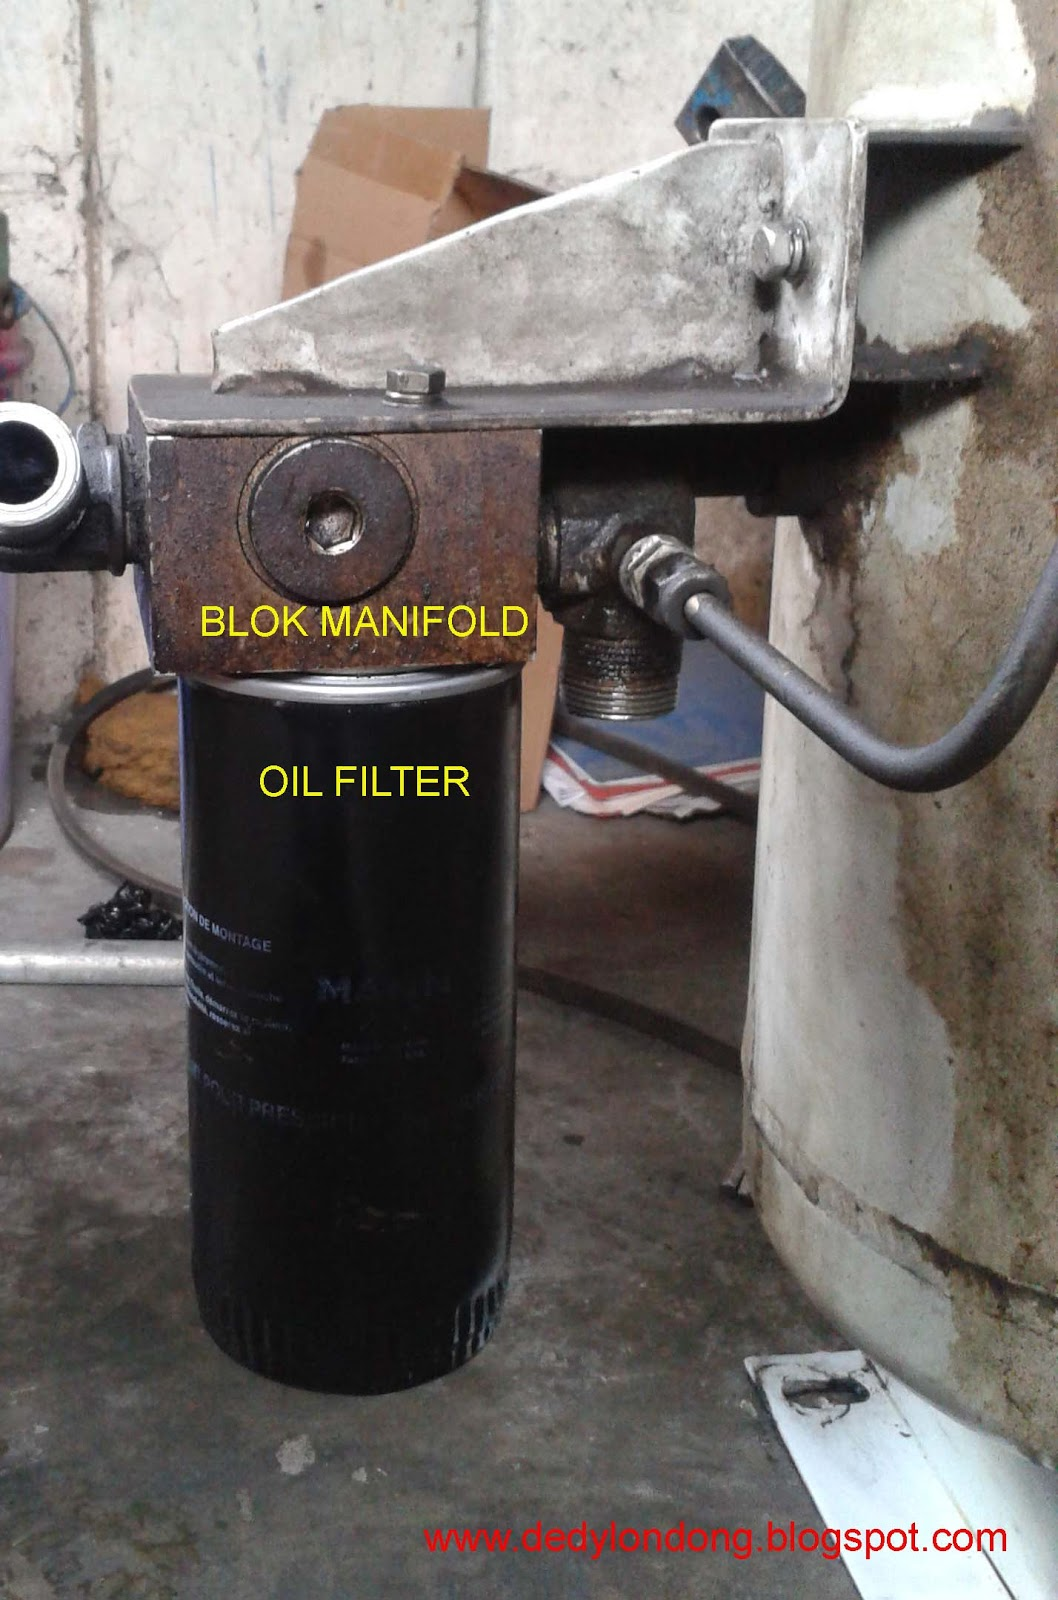 Mengatasi Overheating Pada Screw Air Compressor Oil Cooler 13 Row Selang Blok Manifold Filter Housing